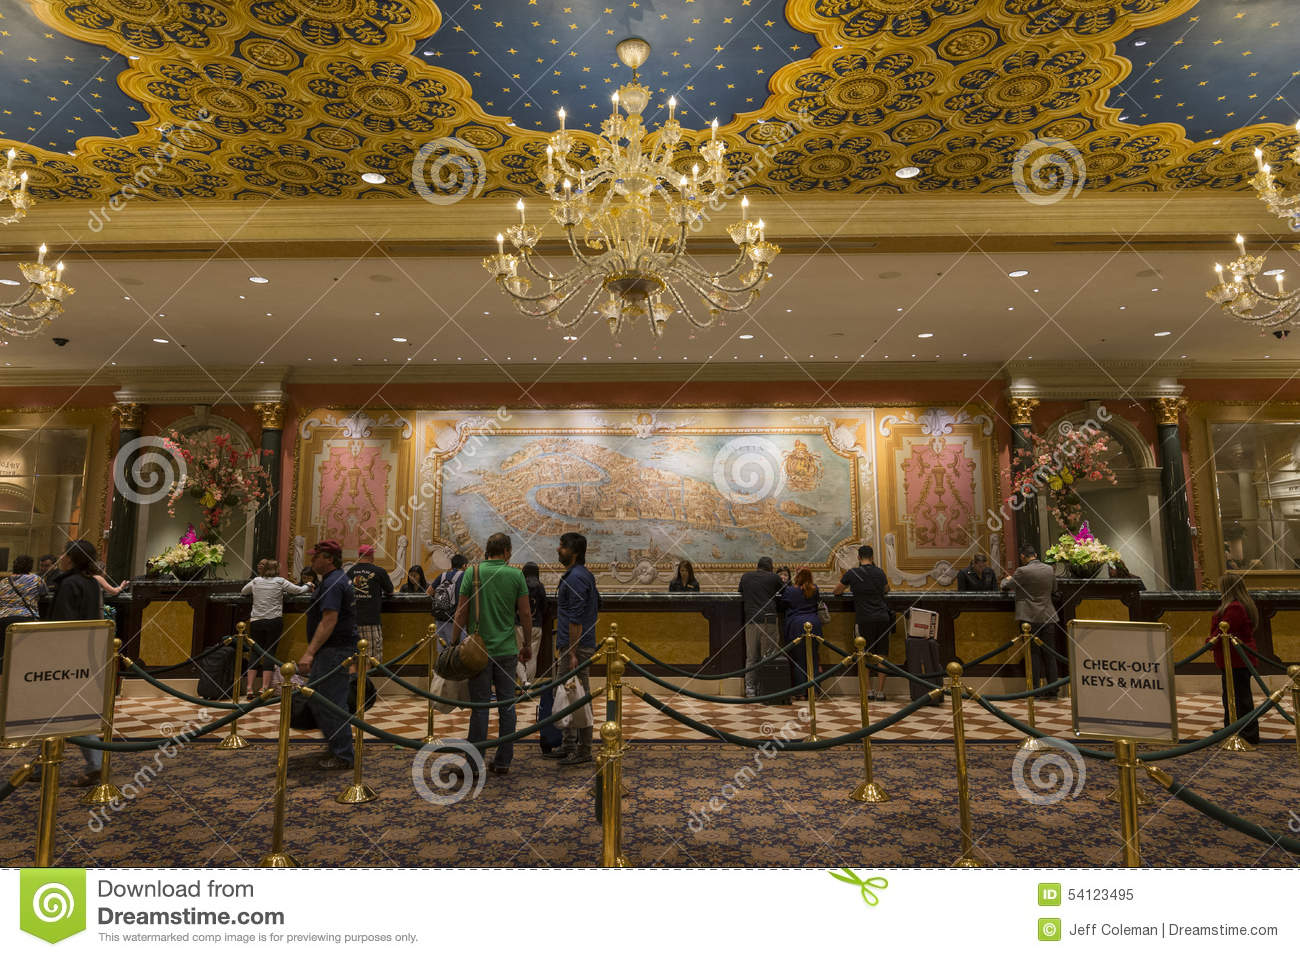 The Check In Area Of The Venetian Hotel In Las Vegas